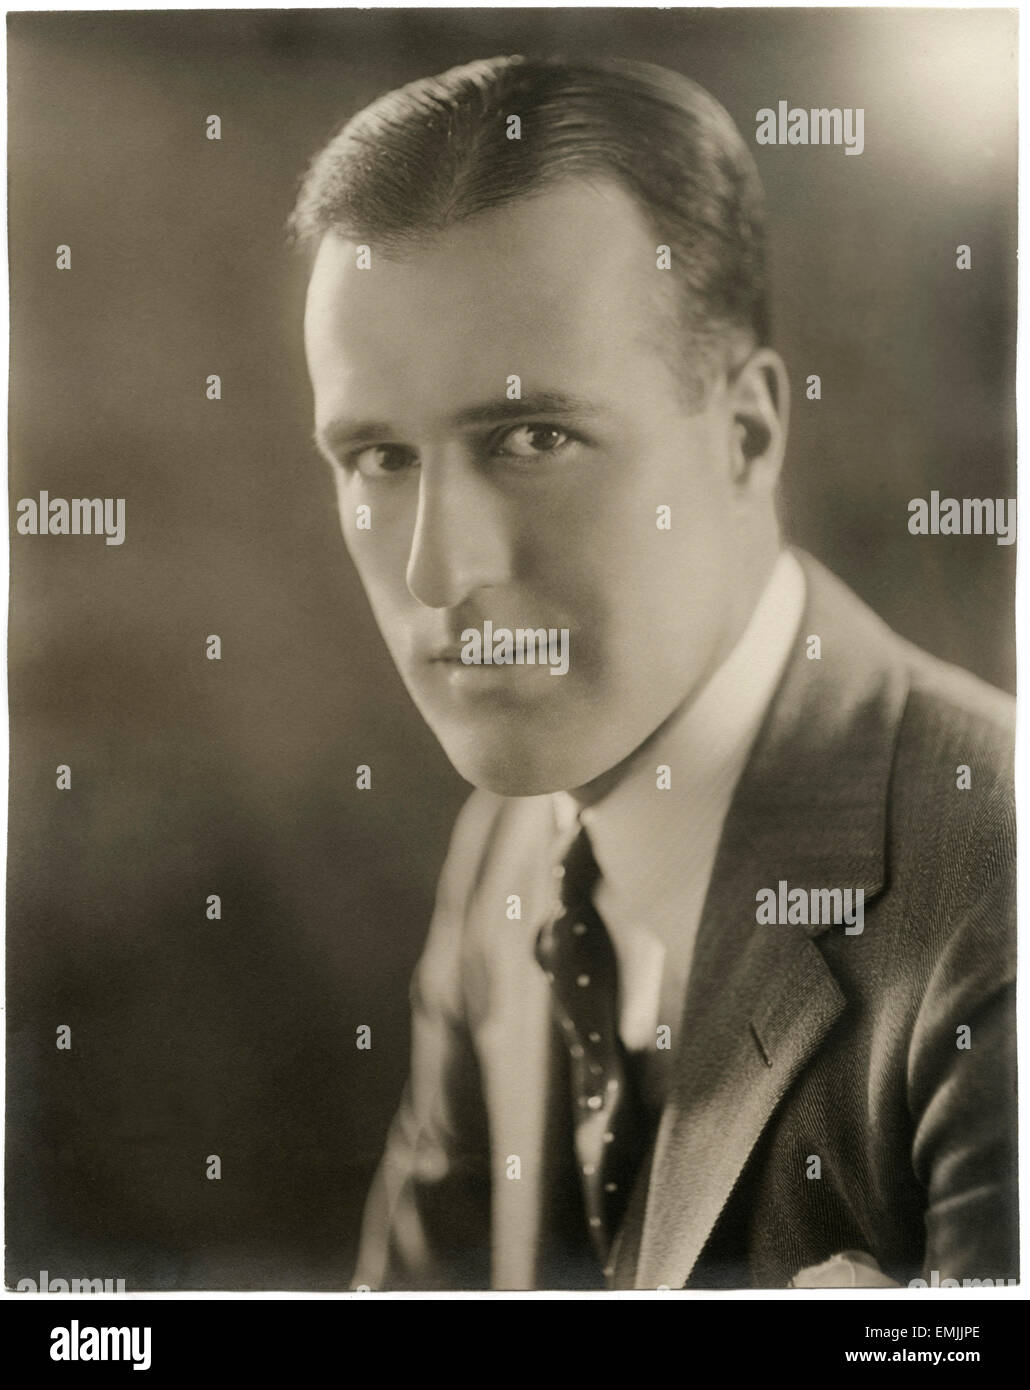 Actor Nigel Barrie, Publicity Portrait, circa 1925 - Stock Image